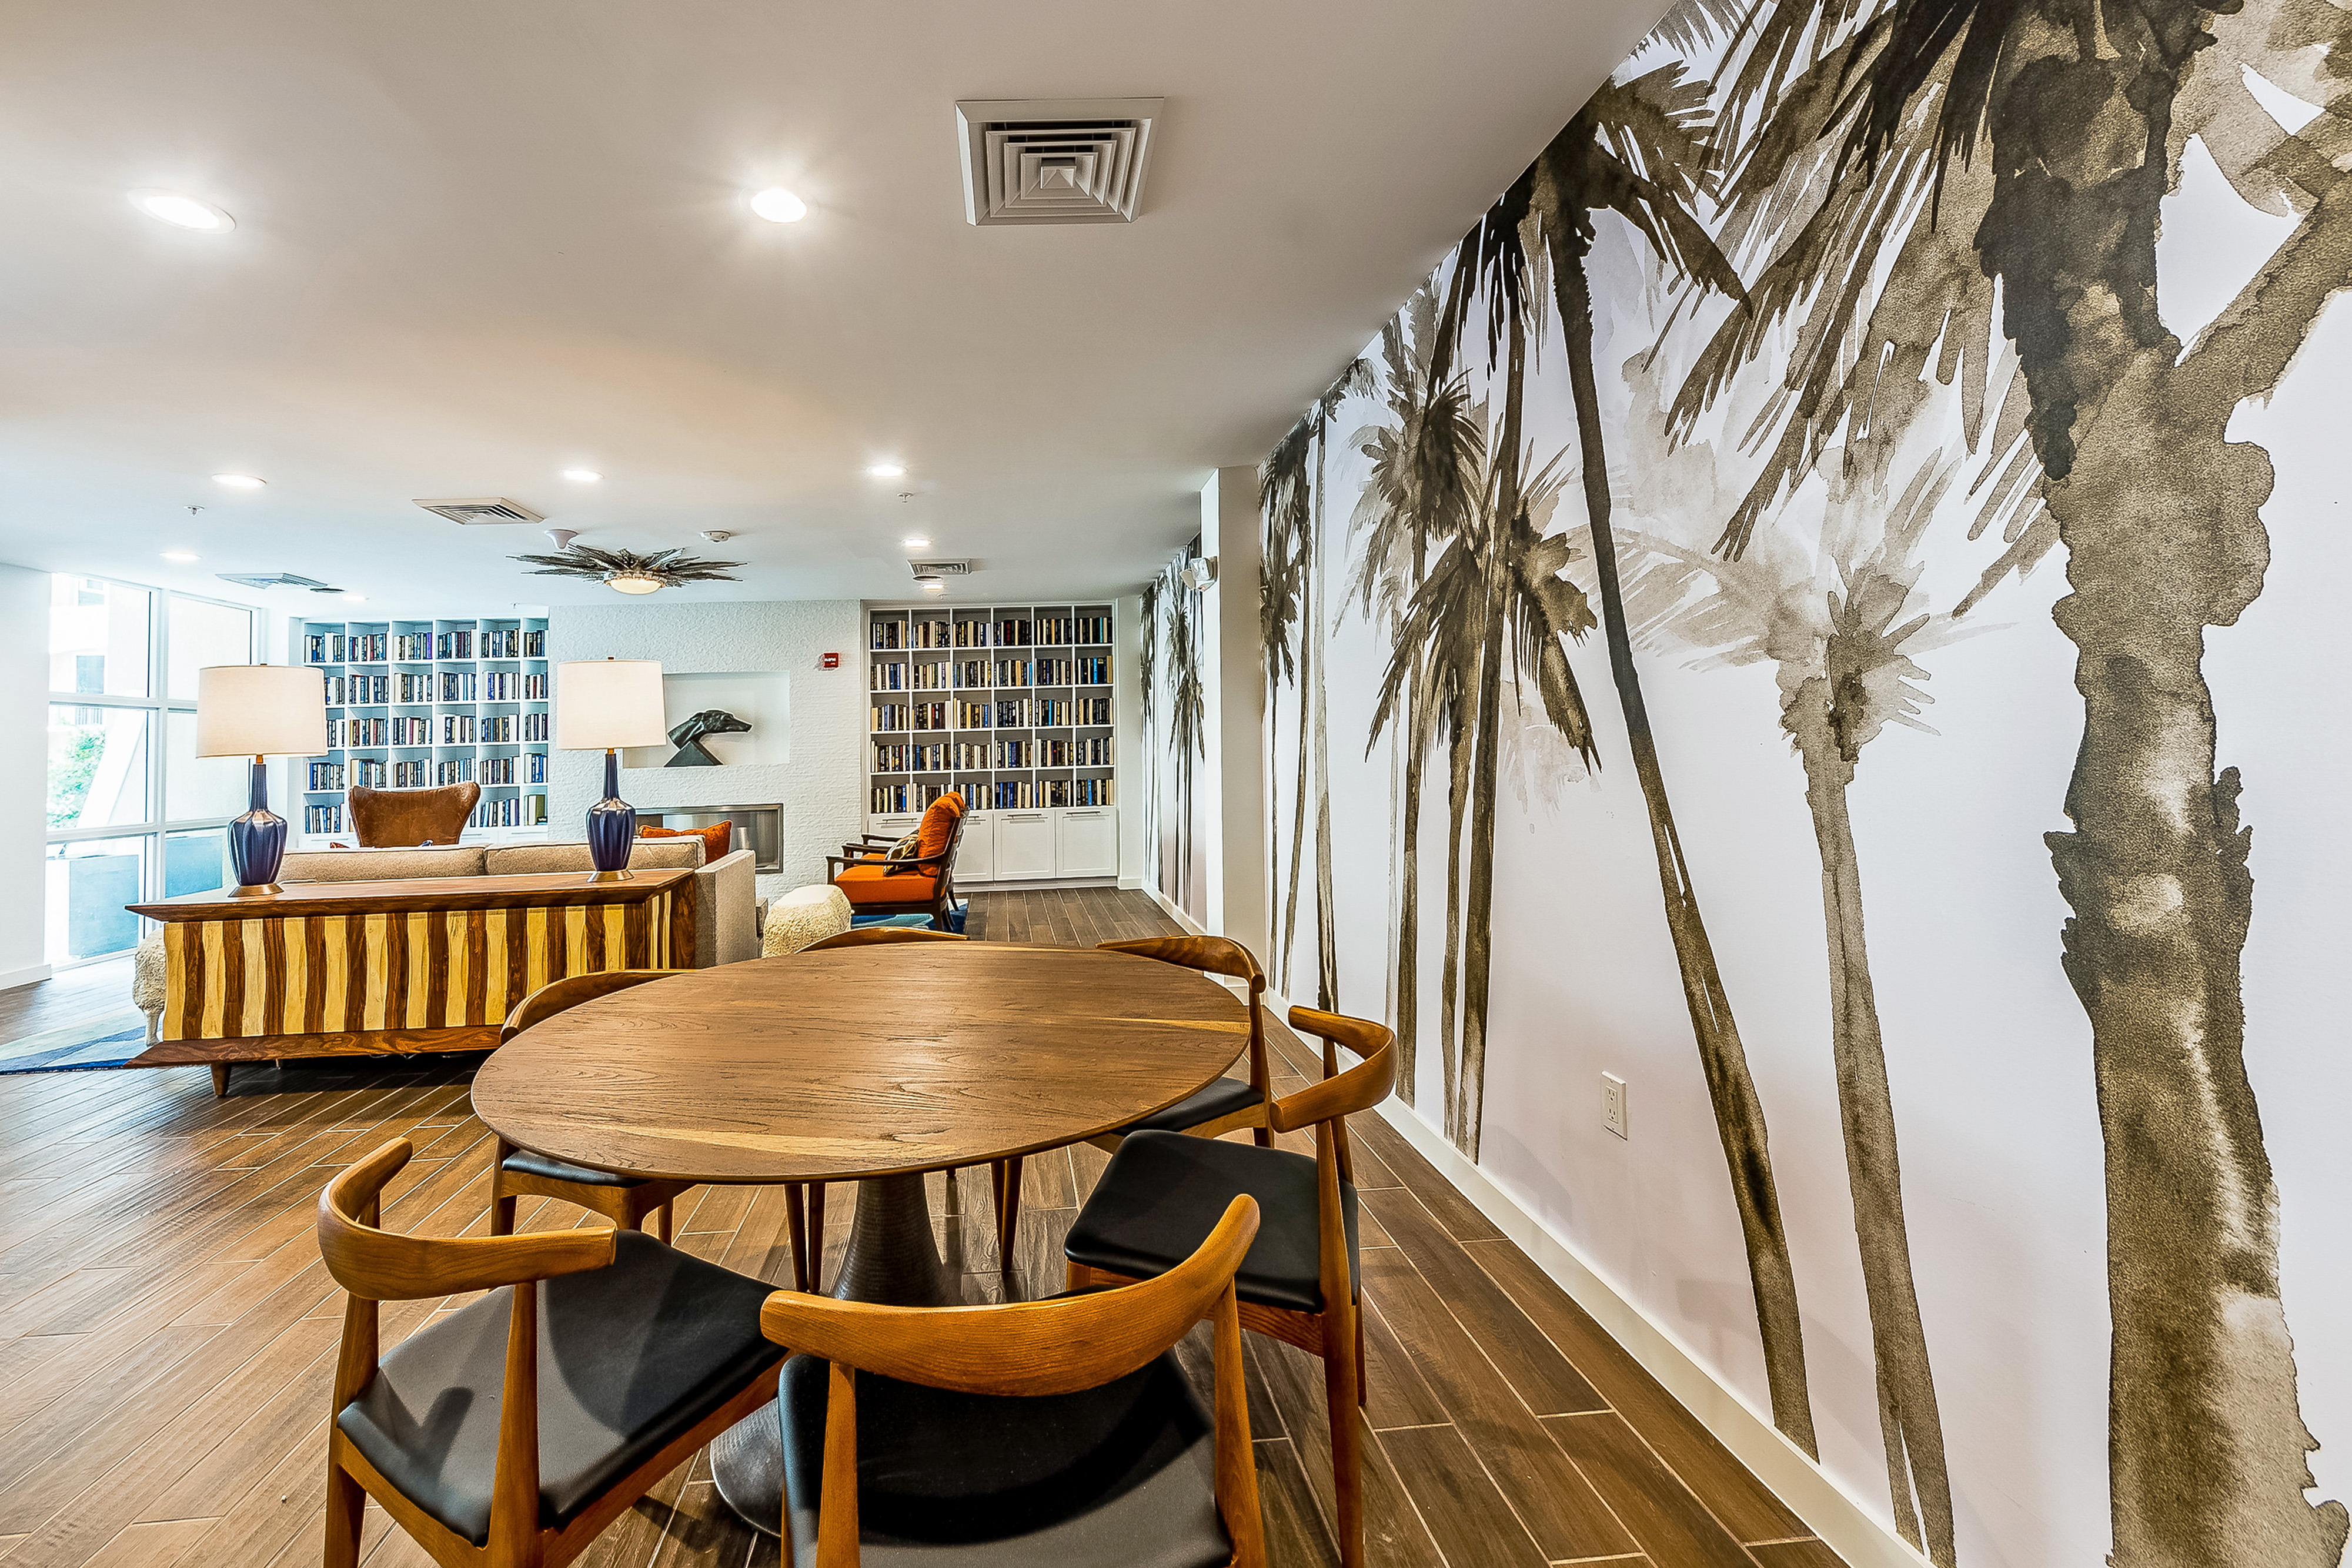 Clubhouse lounge with large round table, seating around a fireplace, bookshelves, and a wall mural of palm trees